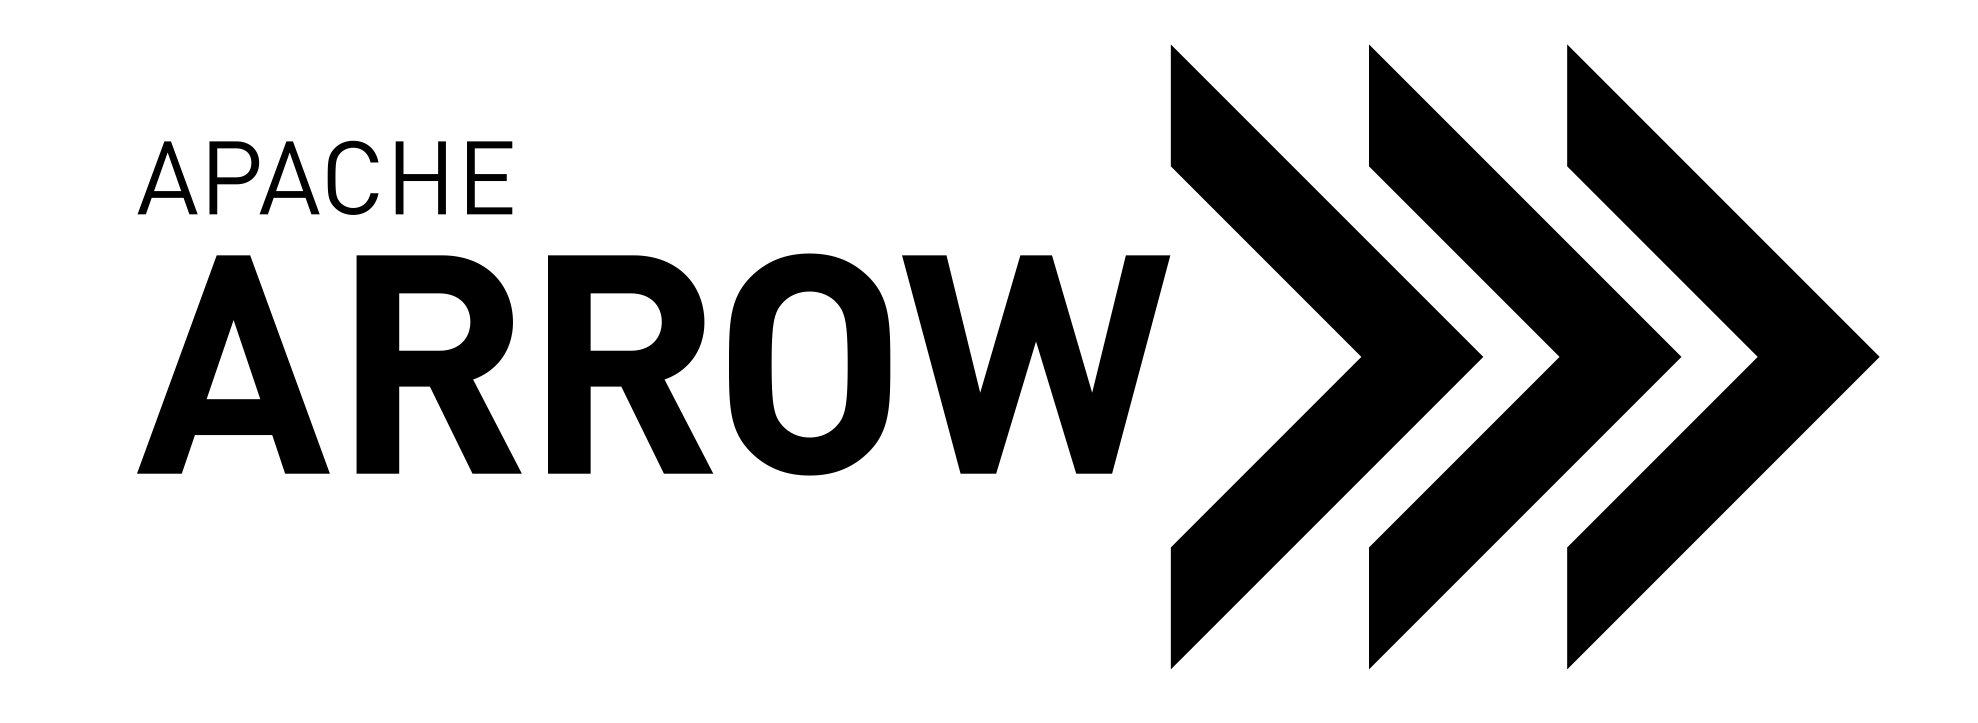 Image depicts the Apache Arrow logo. Apache Arrow is a platform that analyzes the memory in a server's random access memory (RAM)